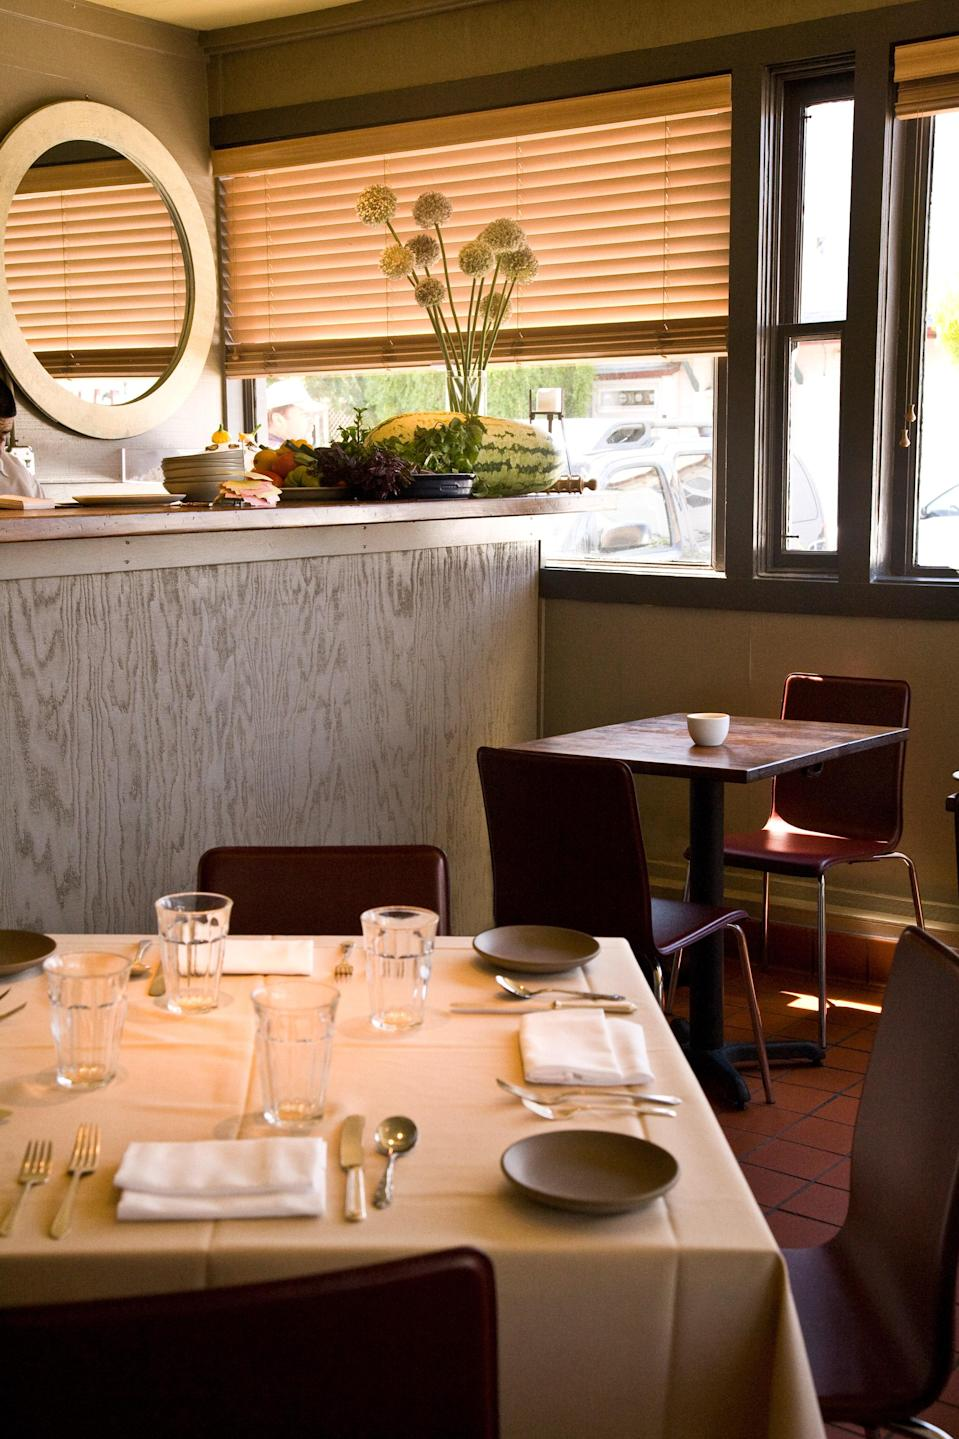 "<p><strong>Give us a quick synopsis.</strong><br> This casual Italian joint is also home to one of the best bars in Pt. Reyes. Pull up a seat, make yourself comfortable, and chat up the locals in this bright modern bistro.</p> <p><strong>What was the crowd like?</strong><br> Osteria Stellina has a balanced ecosystem of locals and visitors. Oyster farmers mingle with innkeepers, and tourists chat up the neighboring cheesemonger. It makes for an unexpectedly pleasant evening. Dress in nice-casual.</p> <p><strong>What should we be drinking?</strong><br> Osteria Stellina stocks a rotating list of local craft beers and boutique wines from Northern California. Some gems are from <a href=""https://www.cntraveler.com/stories/2015-08-04/marin-county-more-than-napa-opening-act?mbid=synd_yahoo_rss"" rel=""nofollow noopener"" target=""_blank"" data-ylk=""slk:Marin County"" class=""link rapid-noclick-resp"">Marin County</a>—not neighboring Napa or Sonoma, as you might expect. They include Sean Thackery's wines from Bolinas and local Pey-Marin riesling.</p> <p><strong>Main event: the food. Give us the lowdown—especially what not to miss.</strong><br> Chef Christian Caiazzo's Marin-centric dishes pair perfectly with the local wines and beers. Pick out something from the main menu and order it to the bar: local oysters ($18) are a must, as are the Pt. Reyes cheese plate ($15) and the steamed mussels with pancetta ($16).</p> <p><strong>And how did the front-of-house folks treat you?</strong><br> The staff seems straight out of Tuscany, but their encyclopedic knowledge of Pt. Reyes proves otherwise.</p> <p><strong>What's the real-real on why we're coming here?</strong><br> Osteria Stellina is perfect for a nice evening out, after a day spent hiking, kayaking, or driving the curvy coastal roads.</p>"